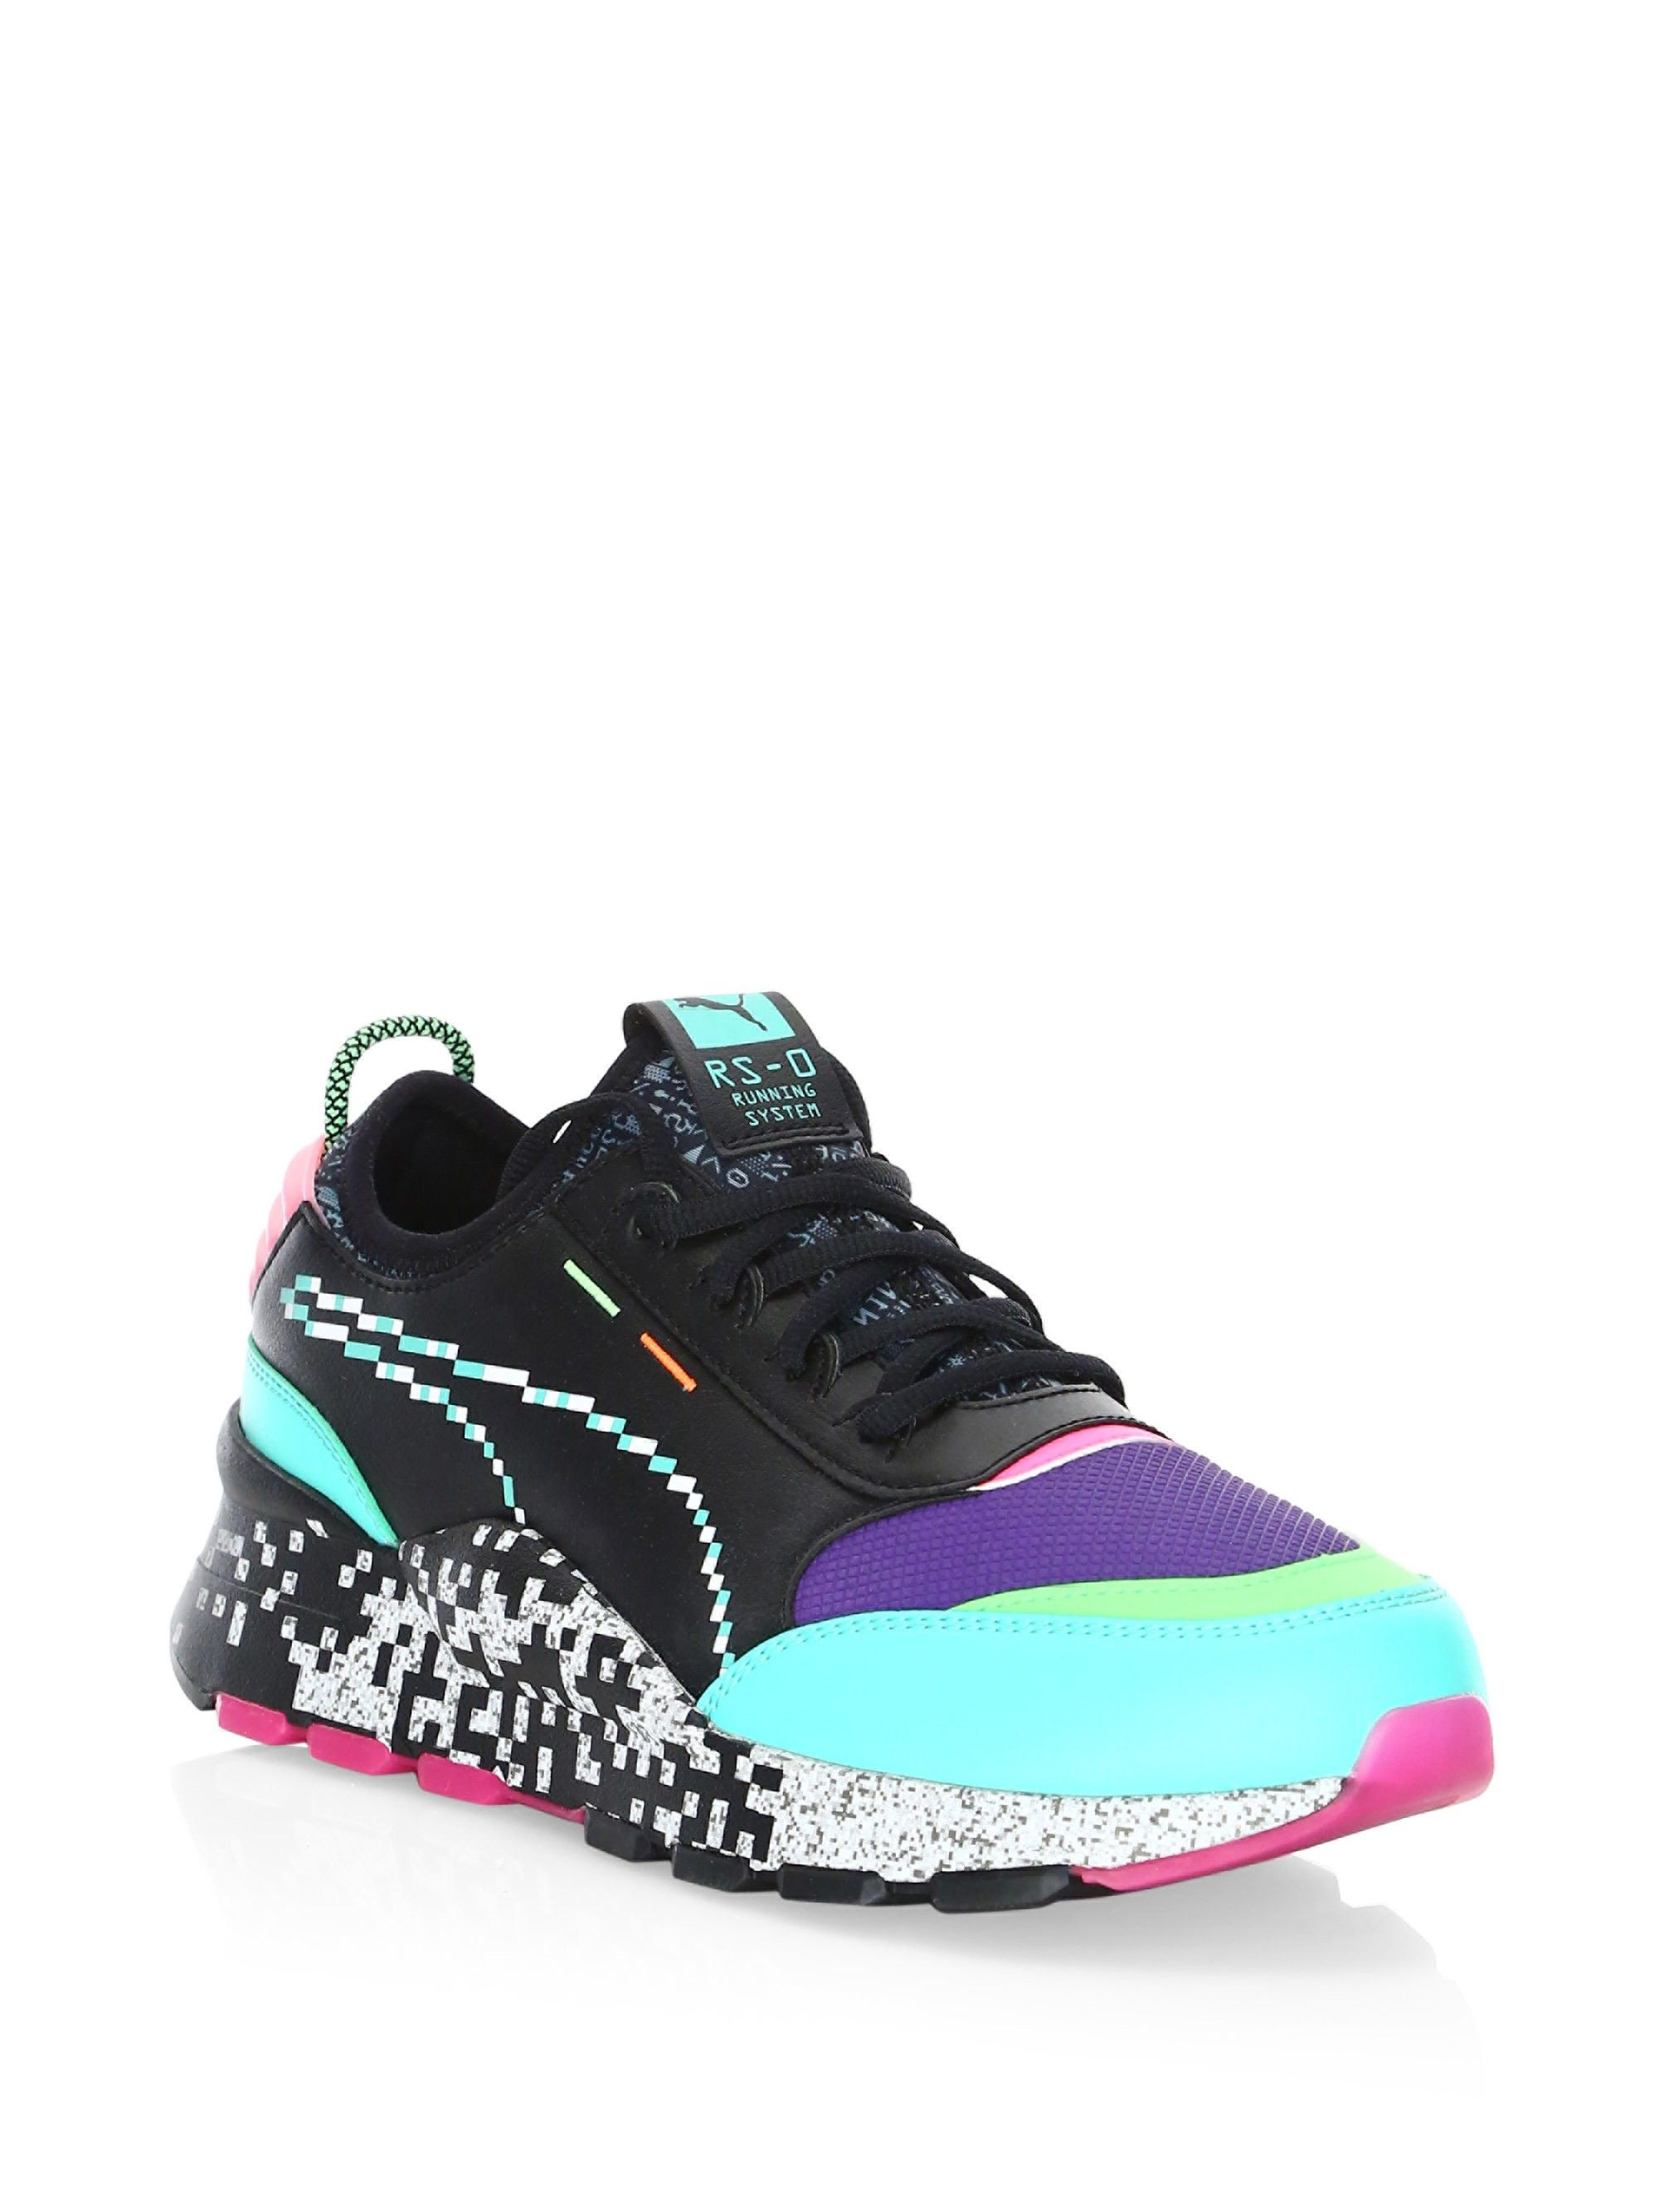 0a75bc70300a Puma Rs-0 Game Error Sneakers - Black Green Pink 10.5